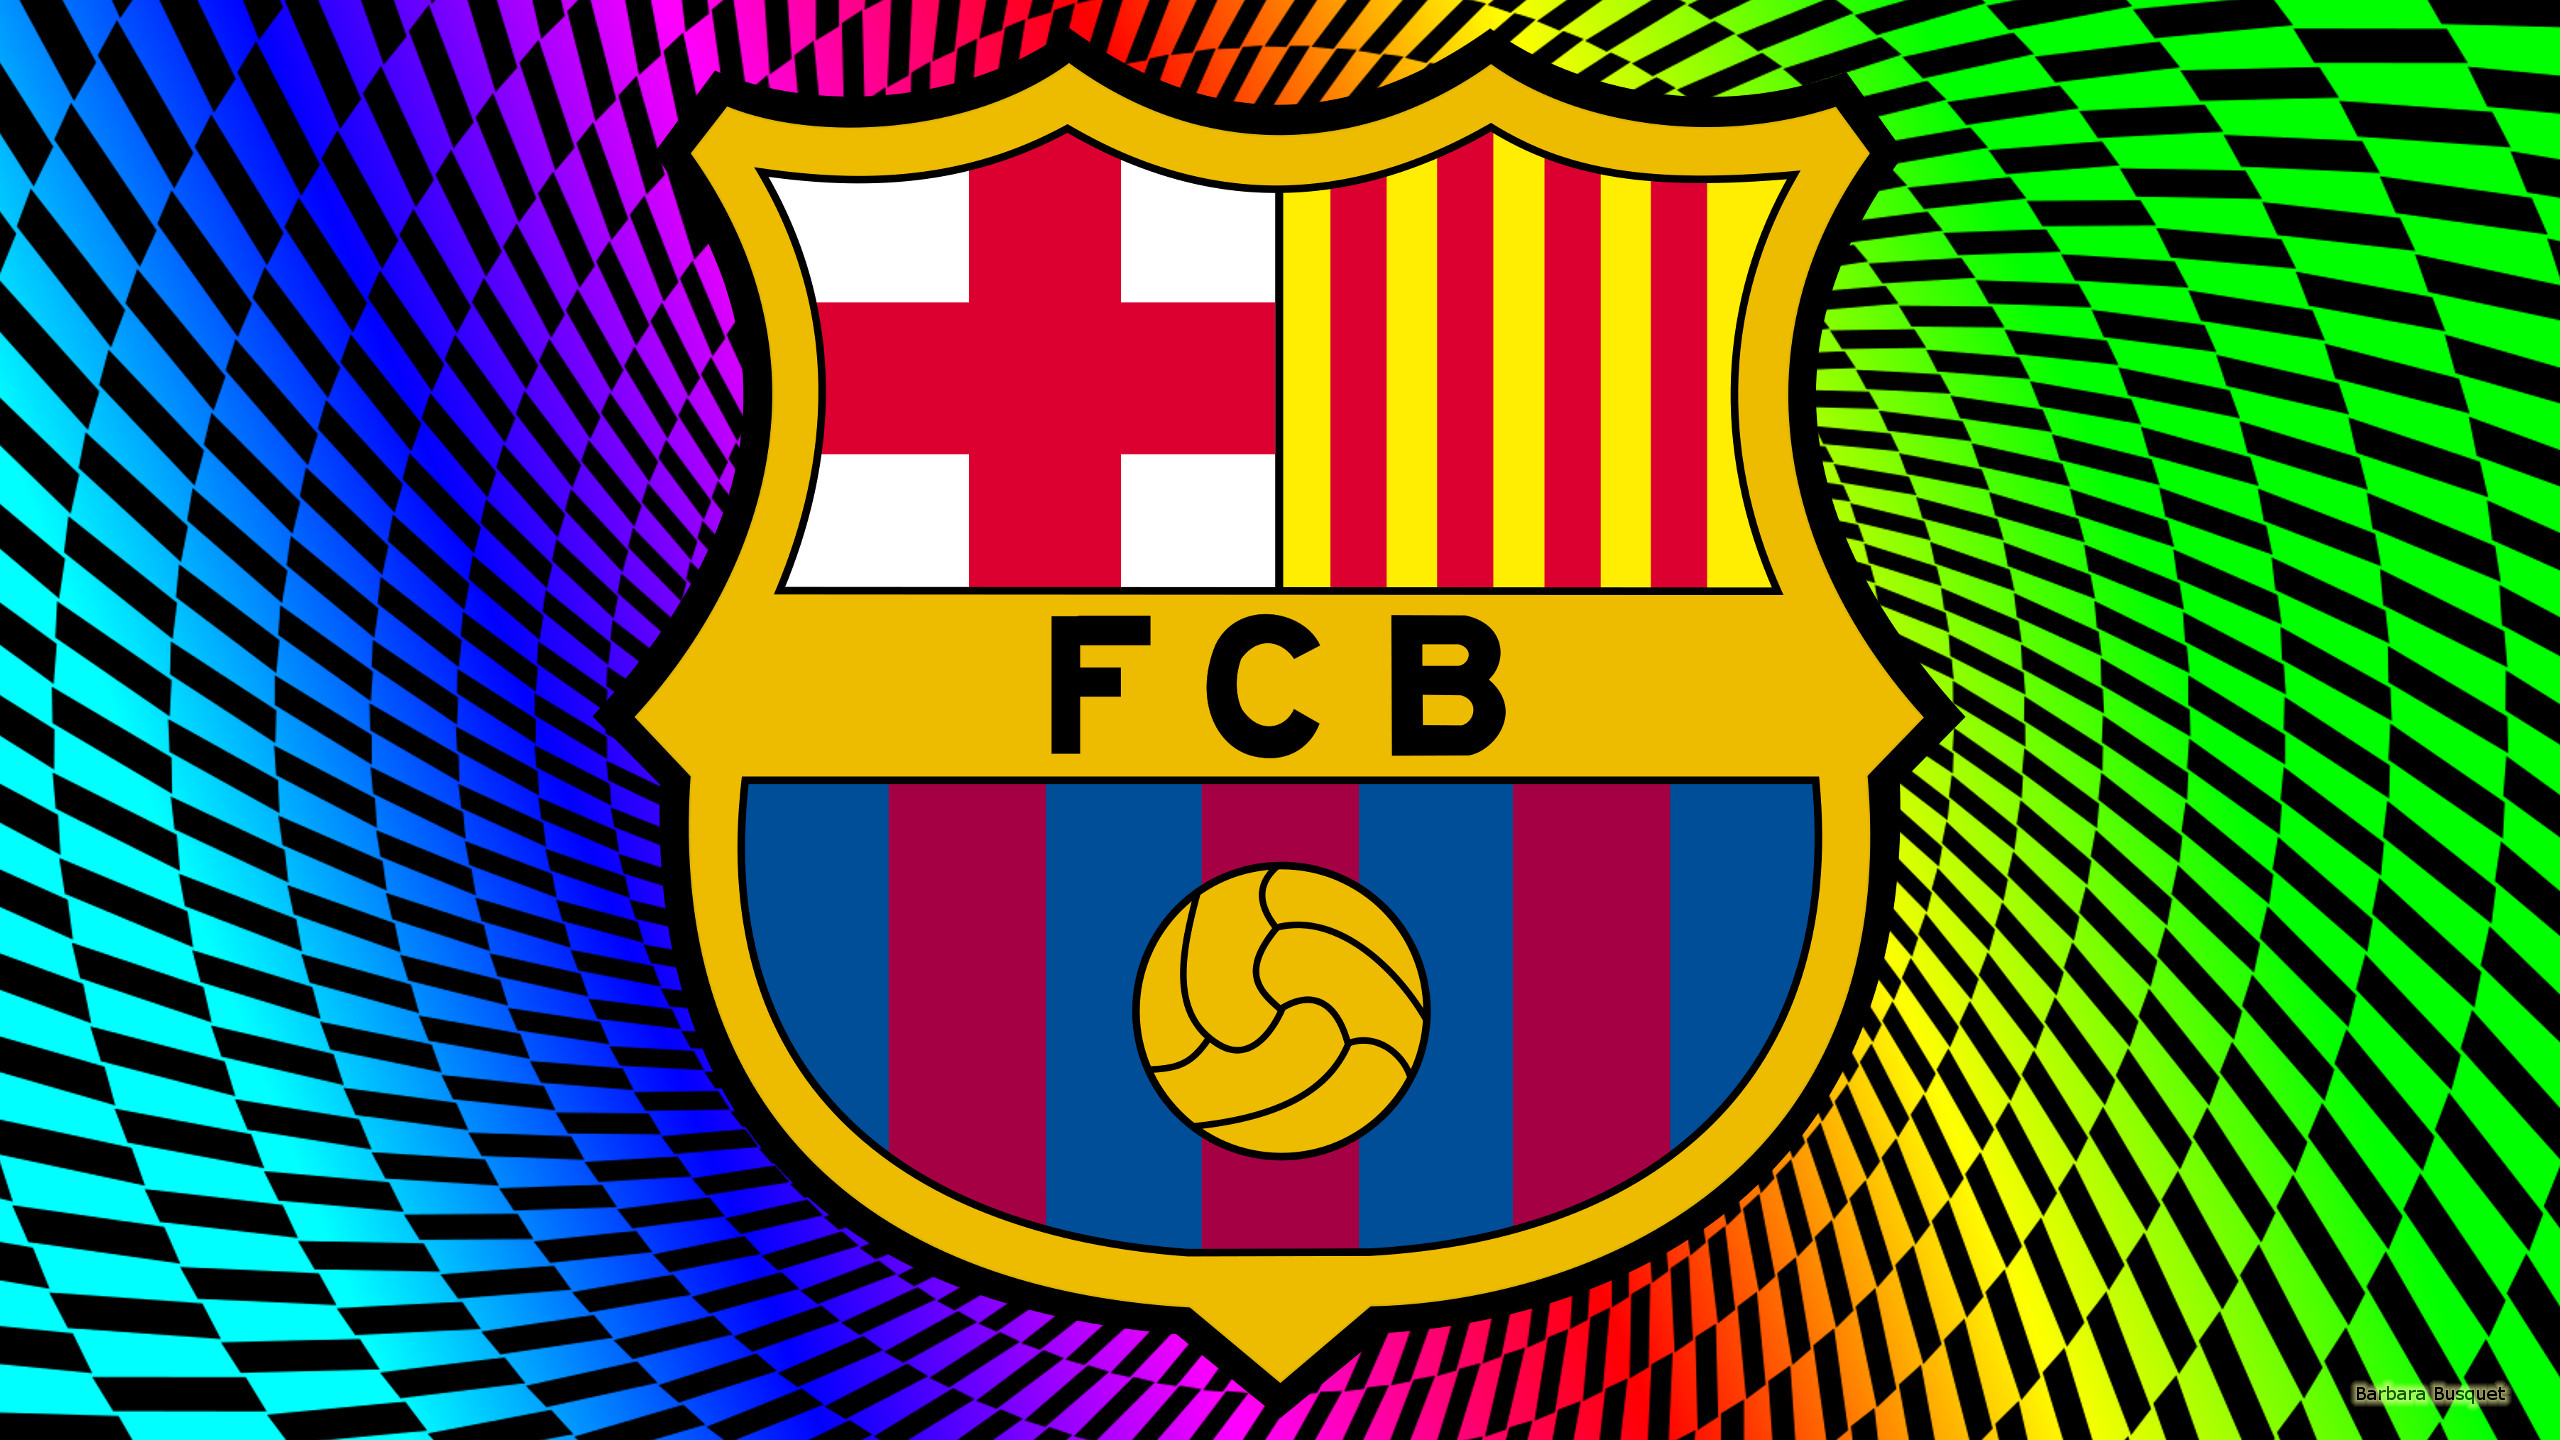 Fc barcelona barbaras hd wallpapers - Forlady barcelona ...